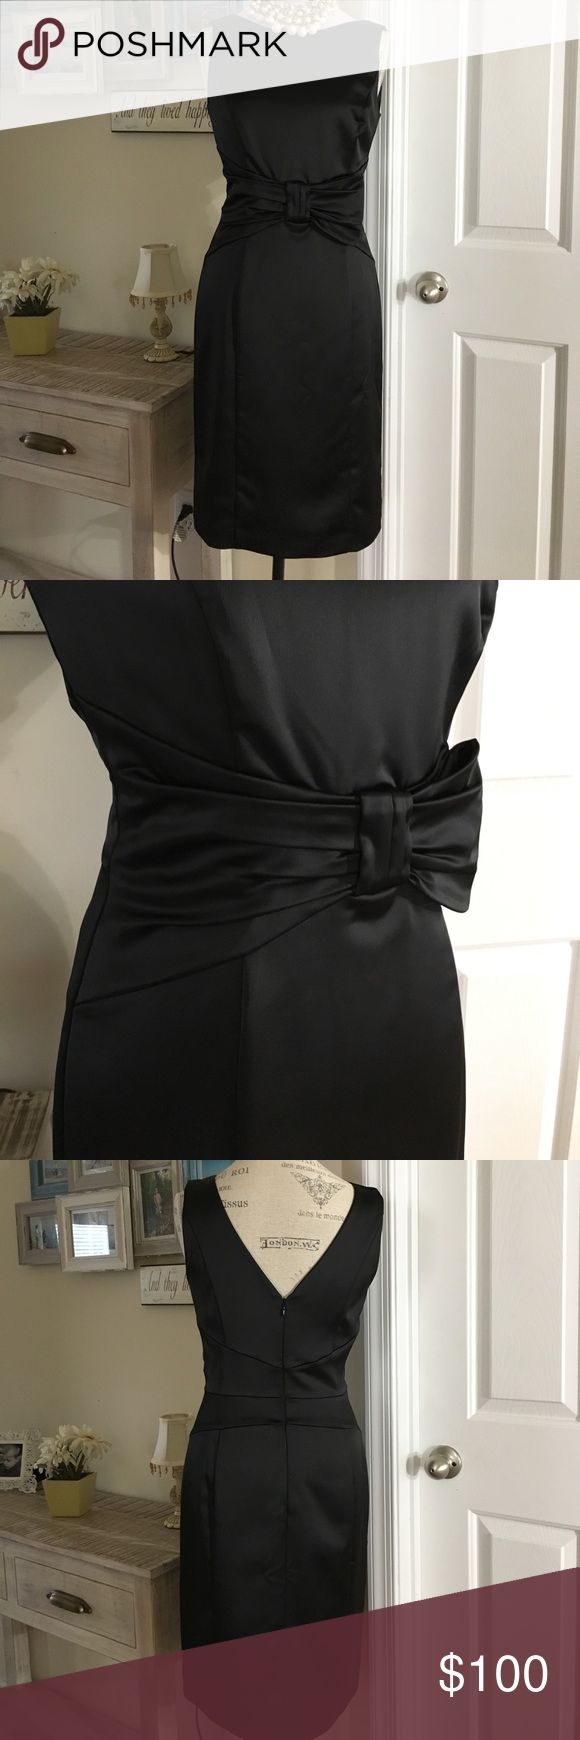 White House Black Market Black Satin Bow Dress 4 This dress is beautiful, stylish and very sophisticated. A must have dress! It is solid black, double lined and zips up the back. The material looks like a satin material but it's actually made out of polyester. There is a gorgeous bow detail on the front which I love. It adds so much character to this dress. It's available in a size 4 and the fit is very true to size. The bottom hem in the back has a small slit which is still sewn together as…